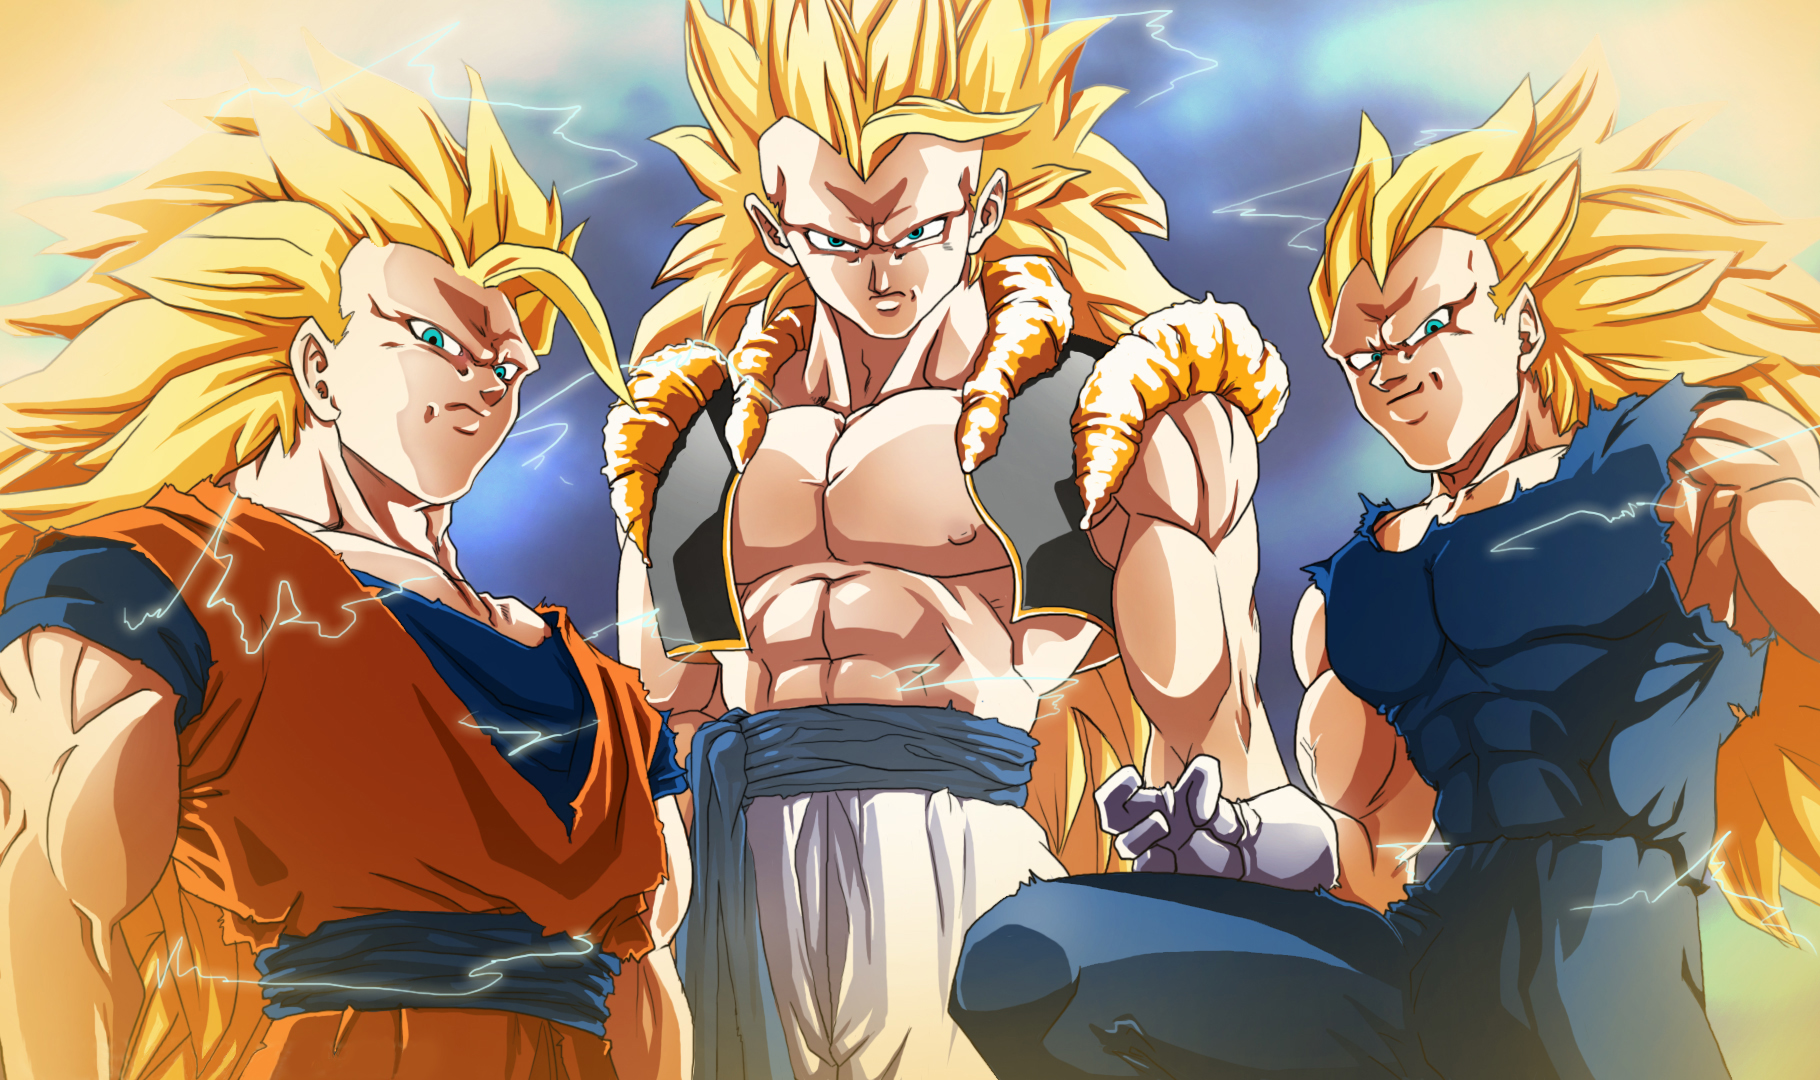 10 things that we can learn from dragonball z the holy connection - Dragon Ball Z Image